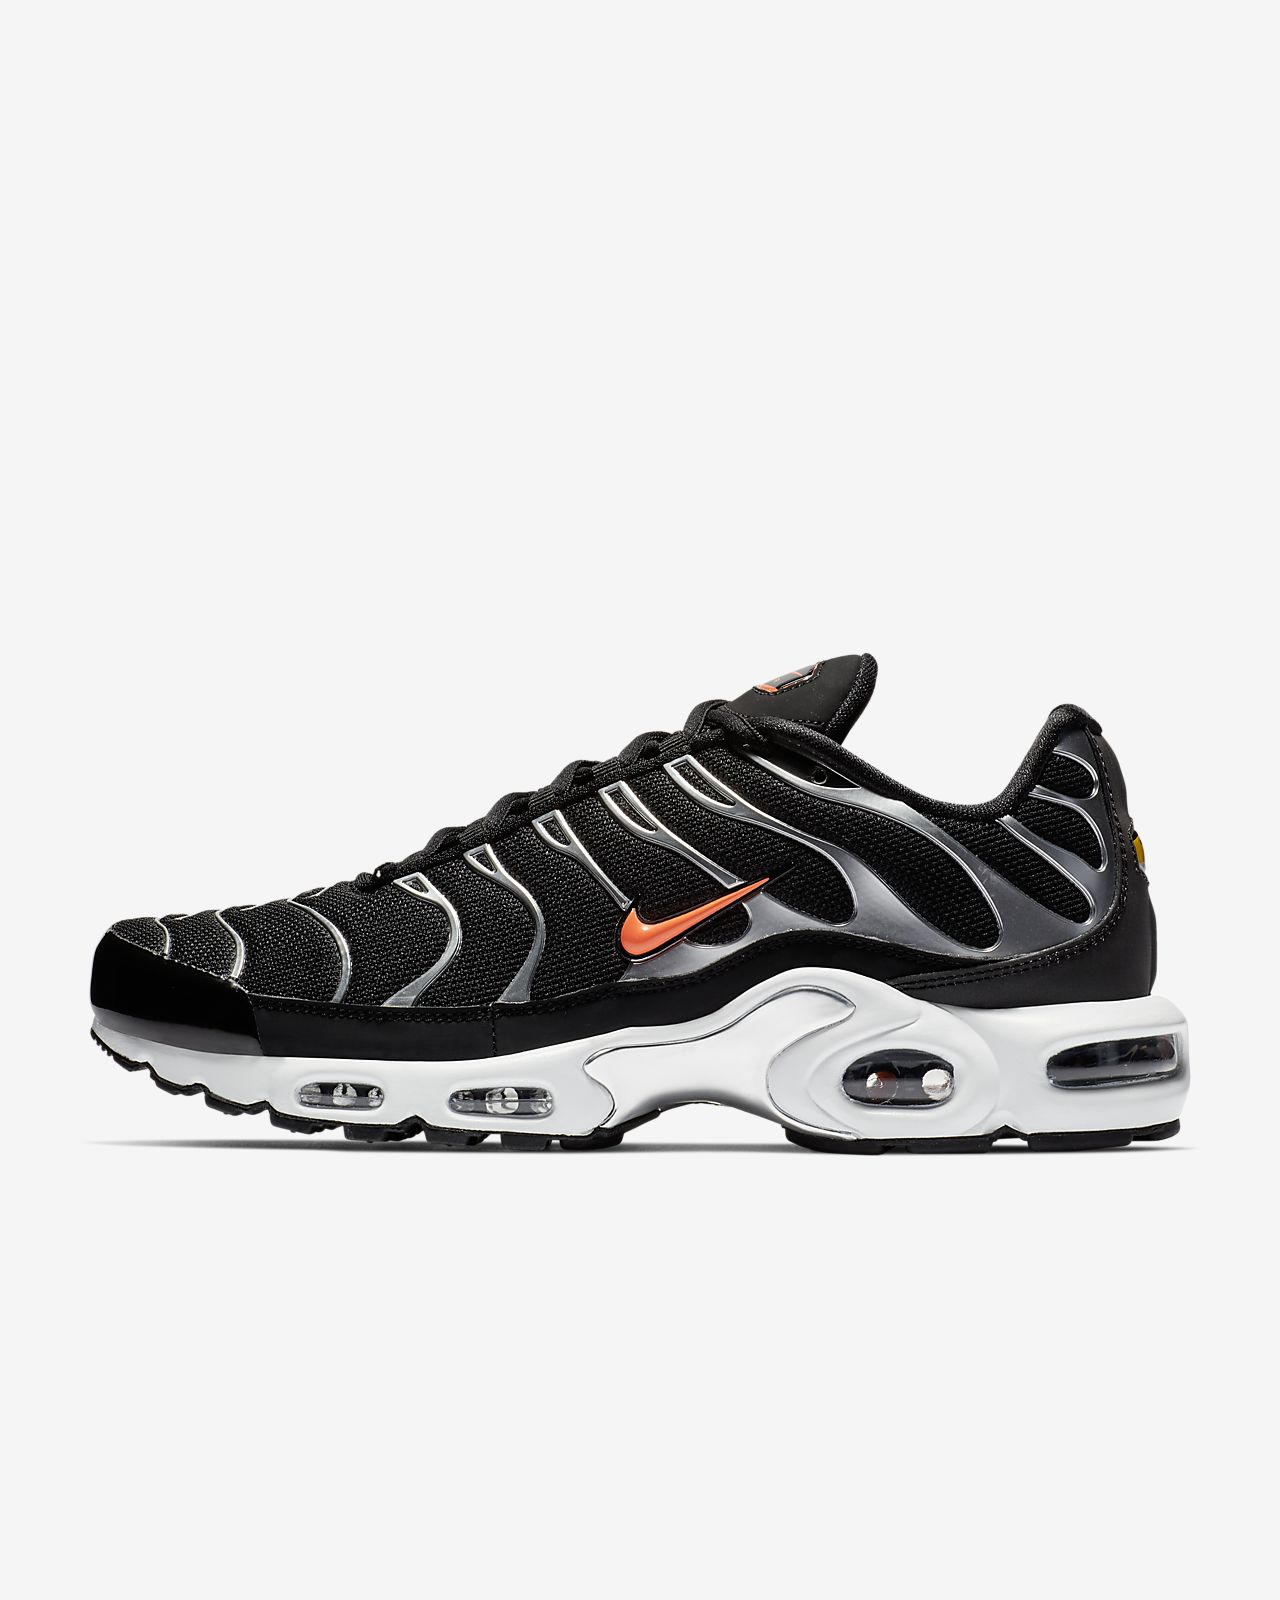 fcbc52f1e34 Nike Air Max Plus TN SE Men s Shoe. Nike.com FI